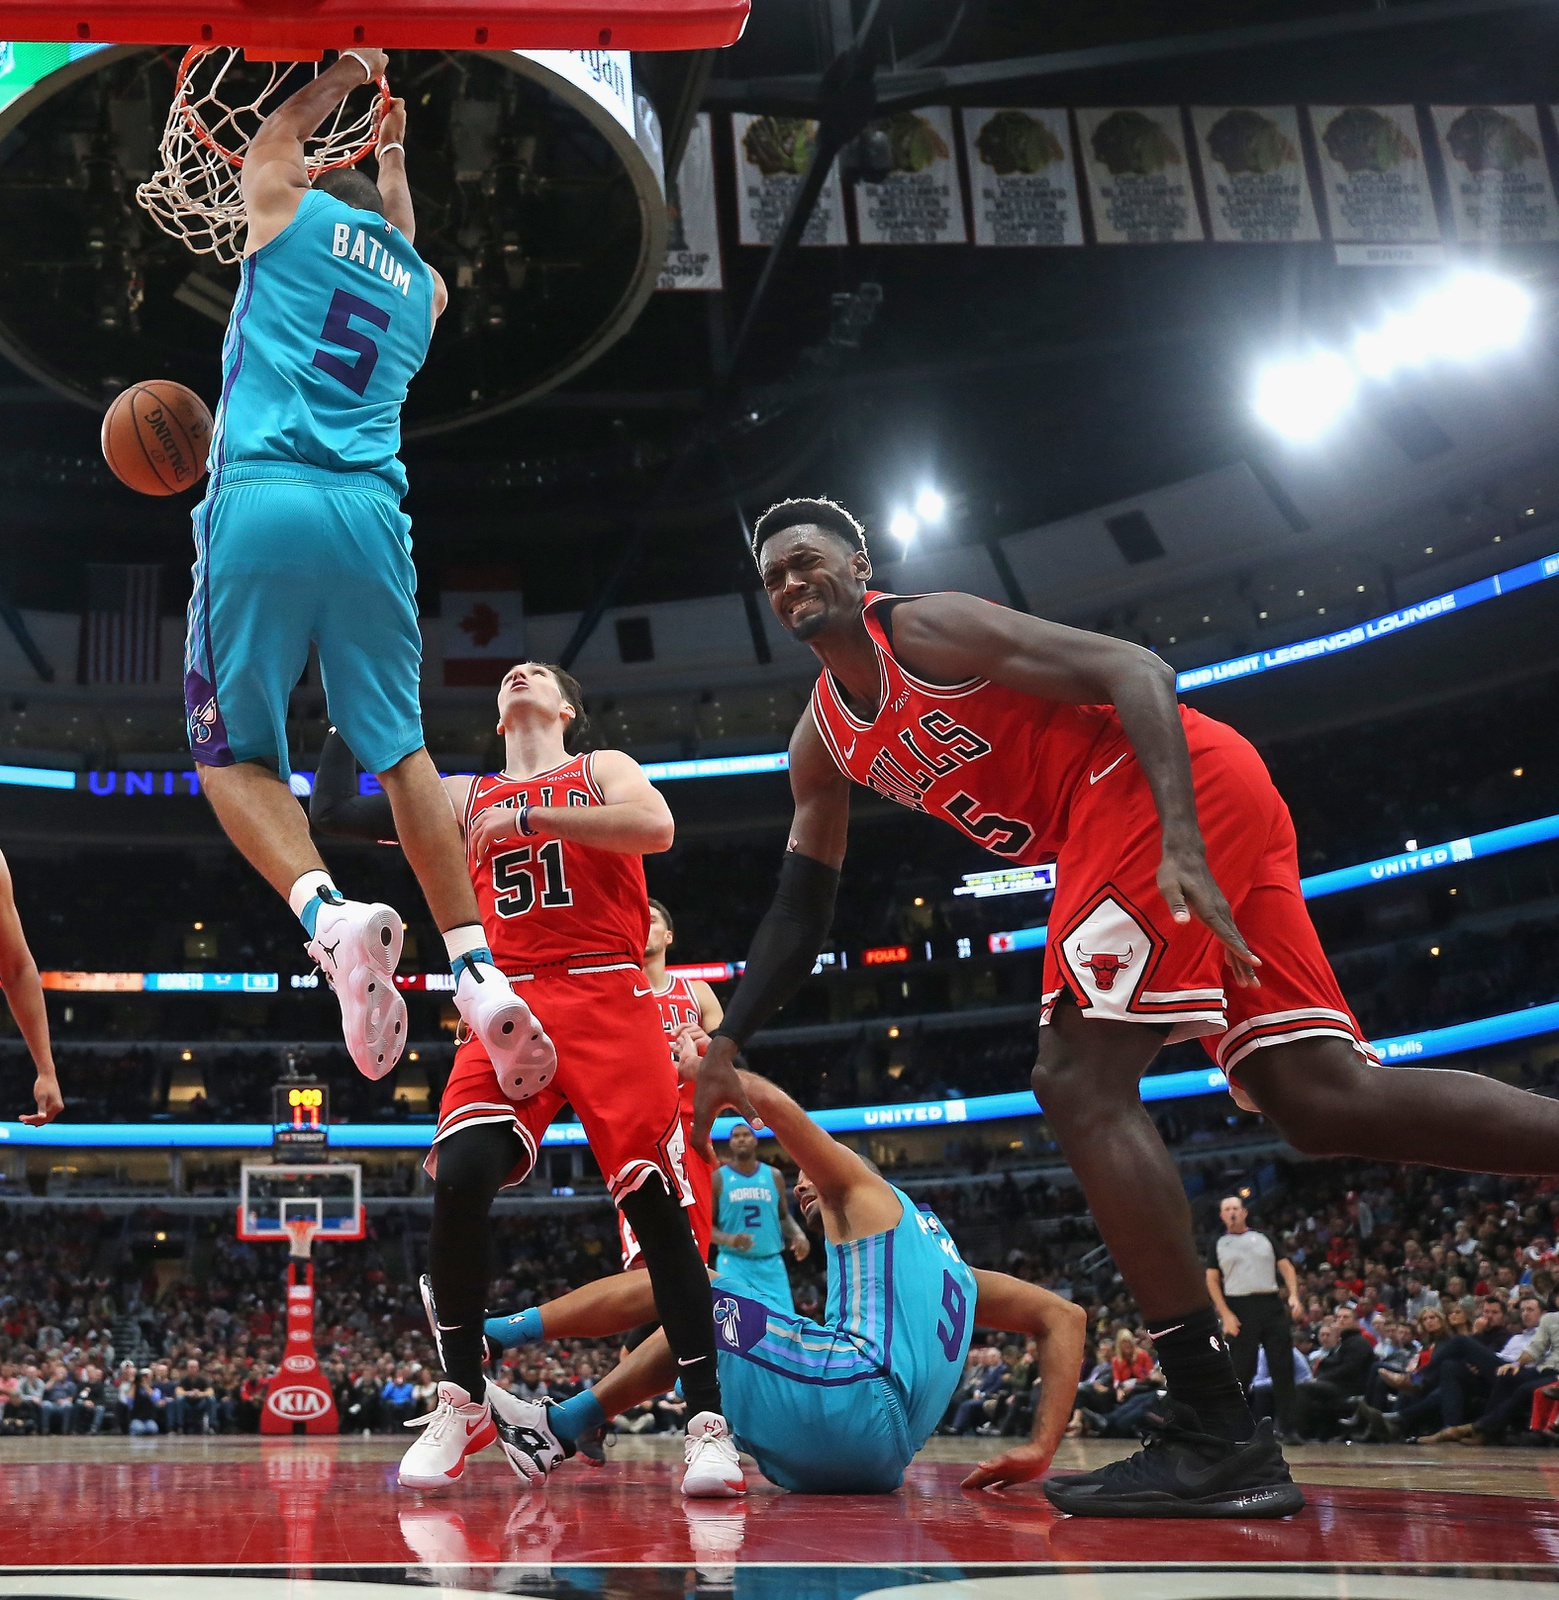 Bobby Portis #5 of the Chicago Bulls winces in pain after trying to stop Nicolas Batum #5 of the Charlotte Hornets from dunking at the United Center on October 24, 2018 in Chicago, Illinois. The Bulls defeated the Hornets 112-110.